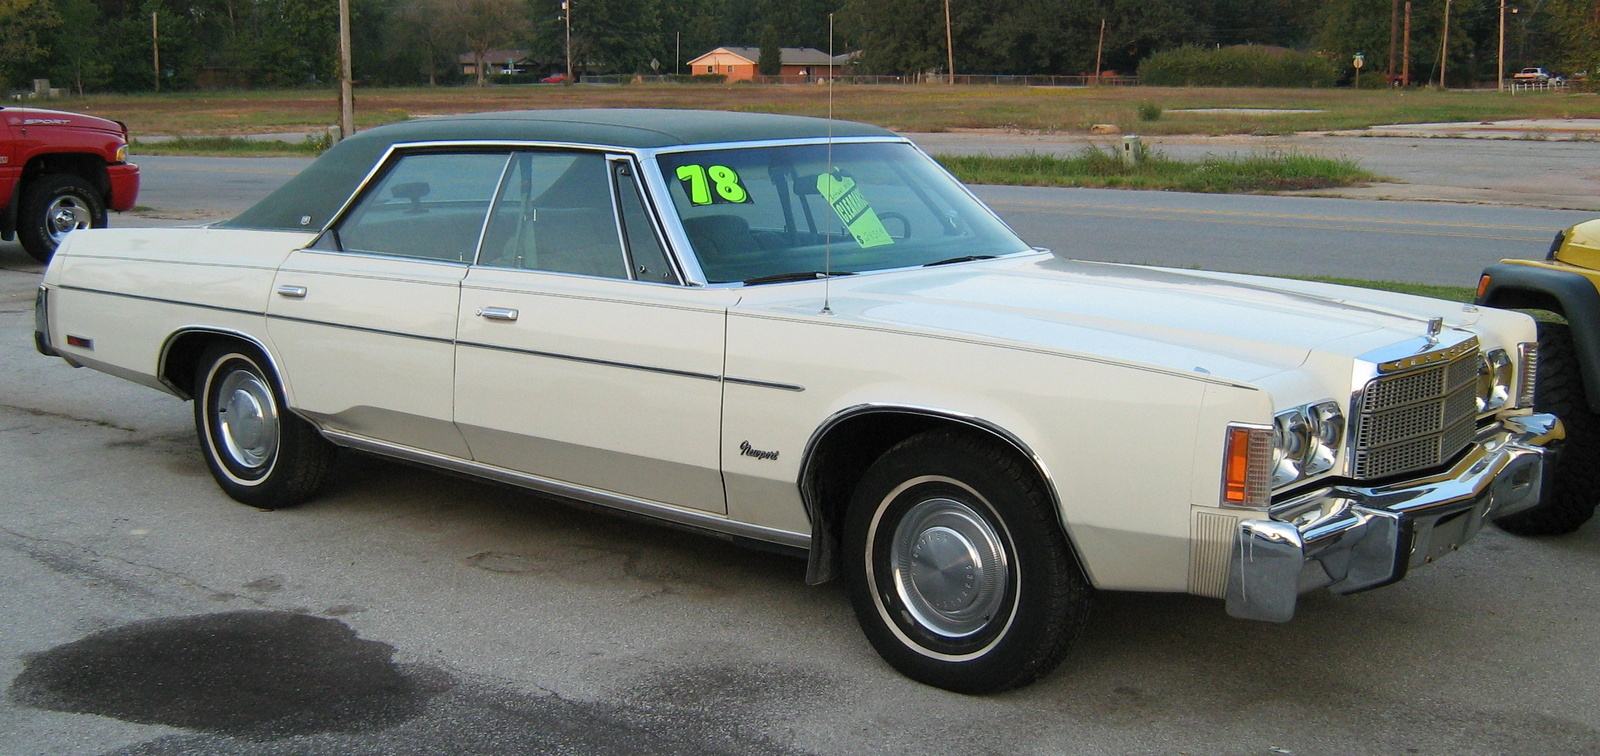 1981 plymouth voyager with Chrysler Newport on Curbside Classic 1983 Dodge Aries Original K Car together with Mercury Cougar moreover Curbside Classic 1984 Dodge Caravan likewise 1988 Plymouth Horizon Overview C15917 as well 1969 Chrysler Newport Pictures C18860 pi13972593.